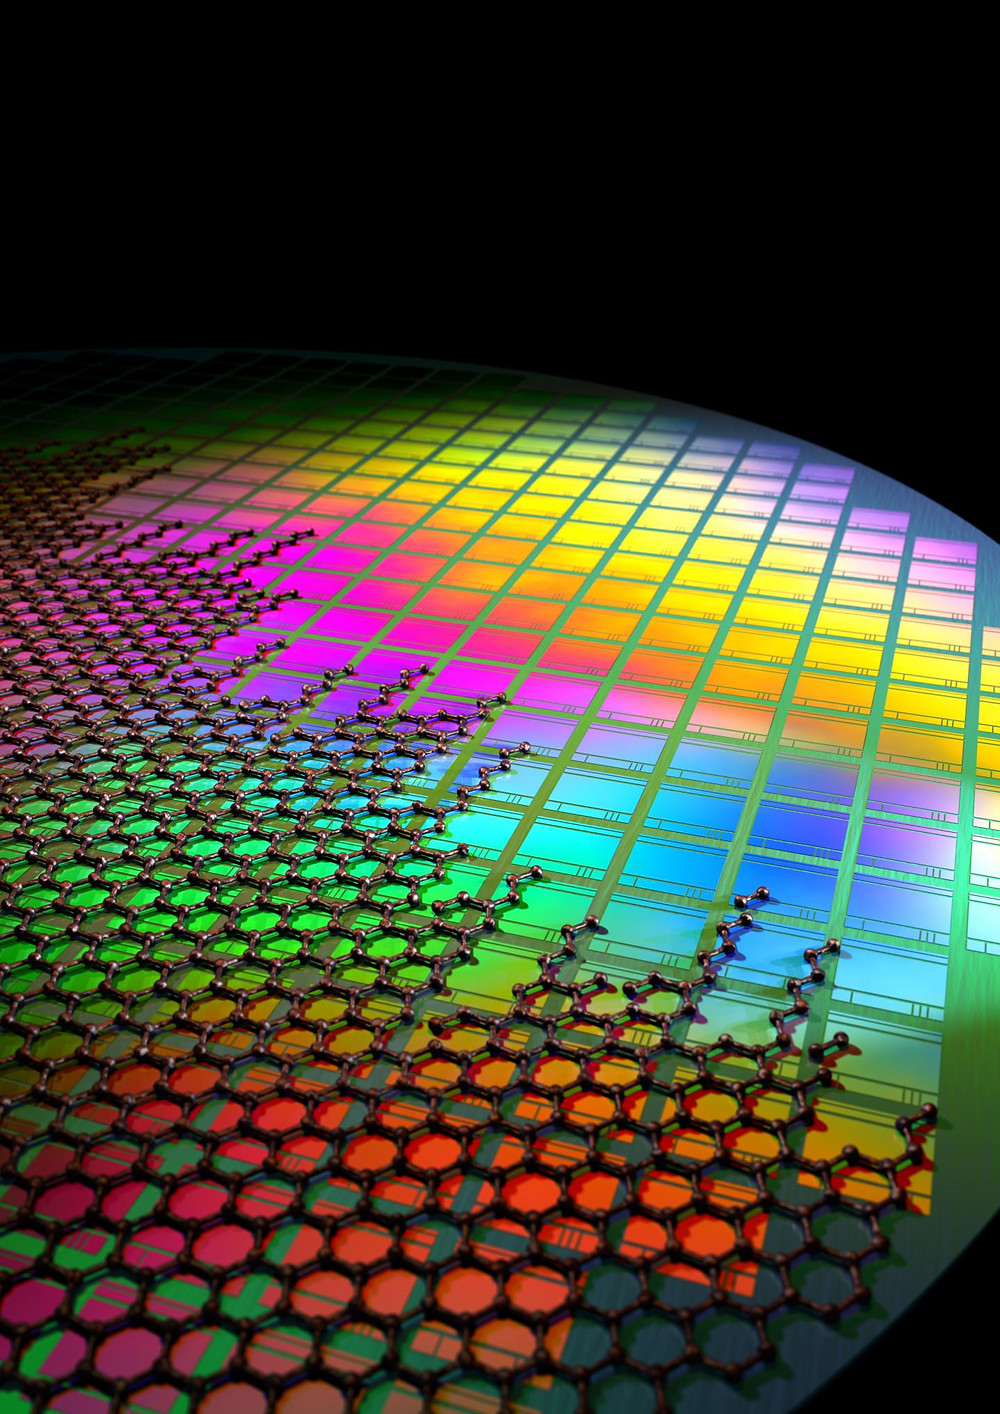 This is graphene integrated onto CMOS pixels. @ Fabien Vialla